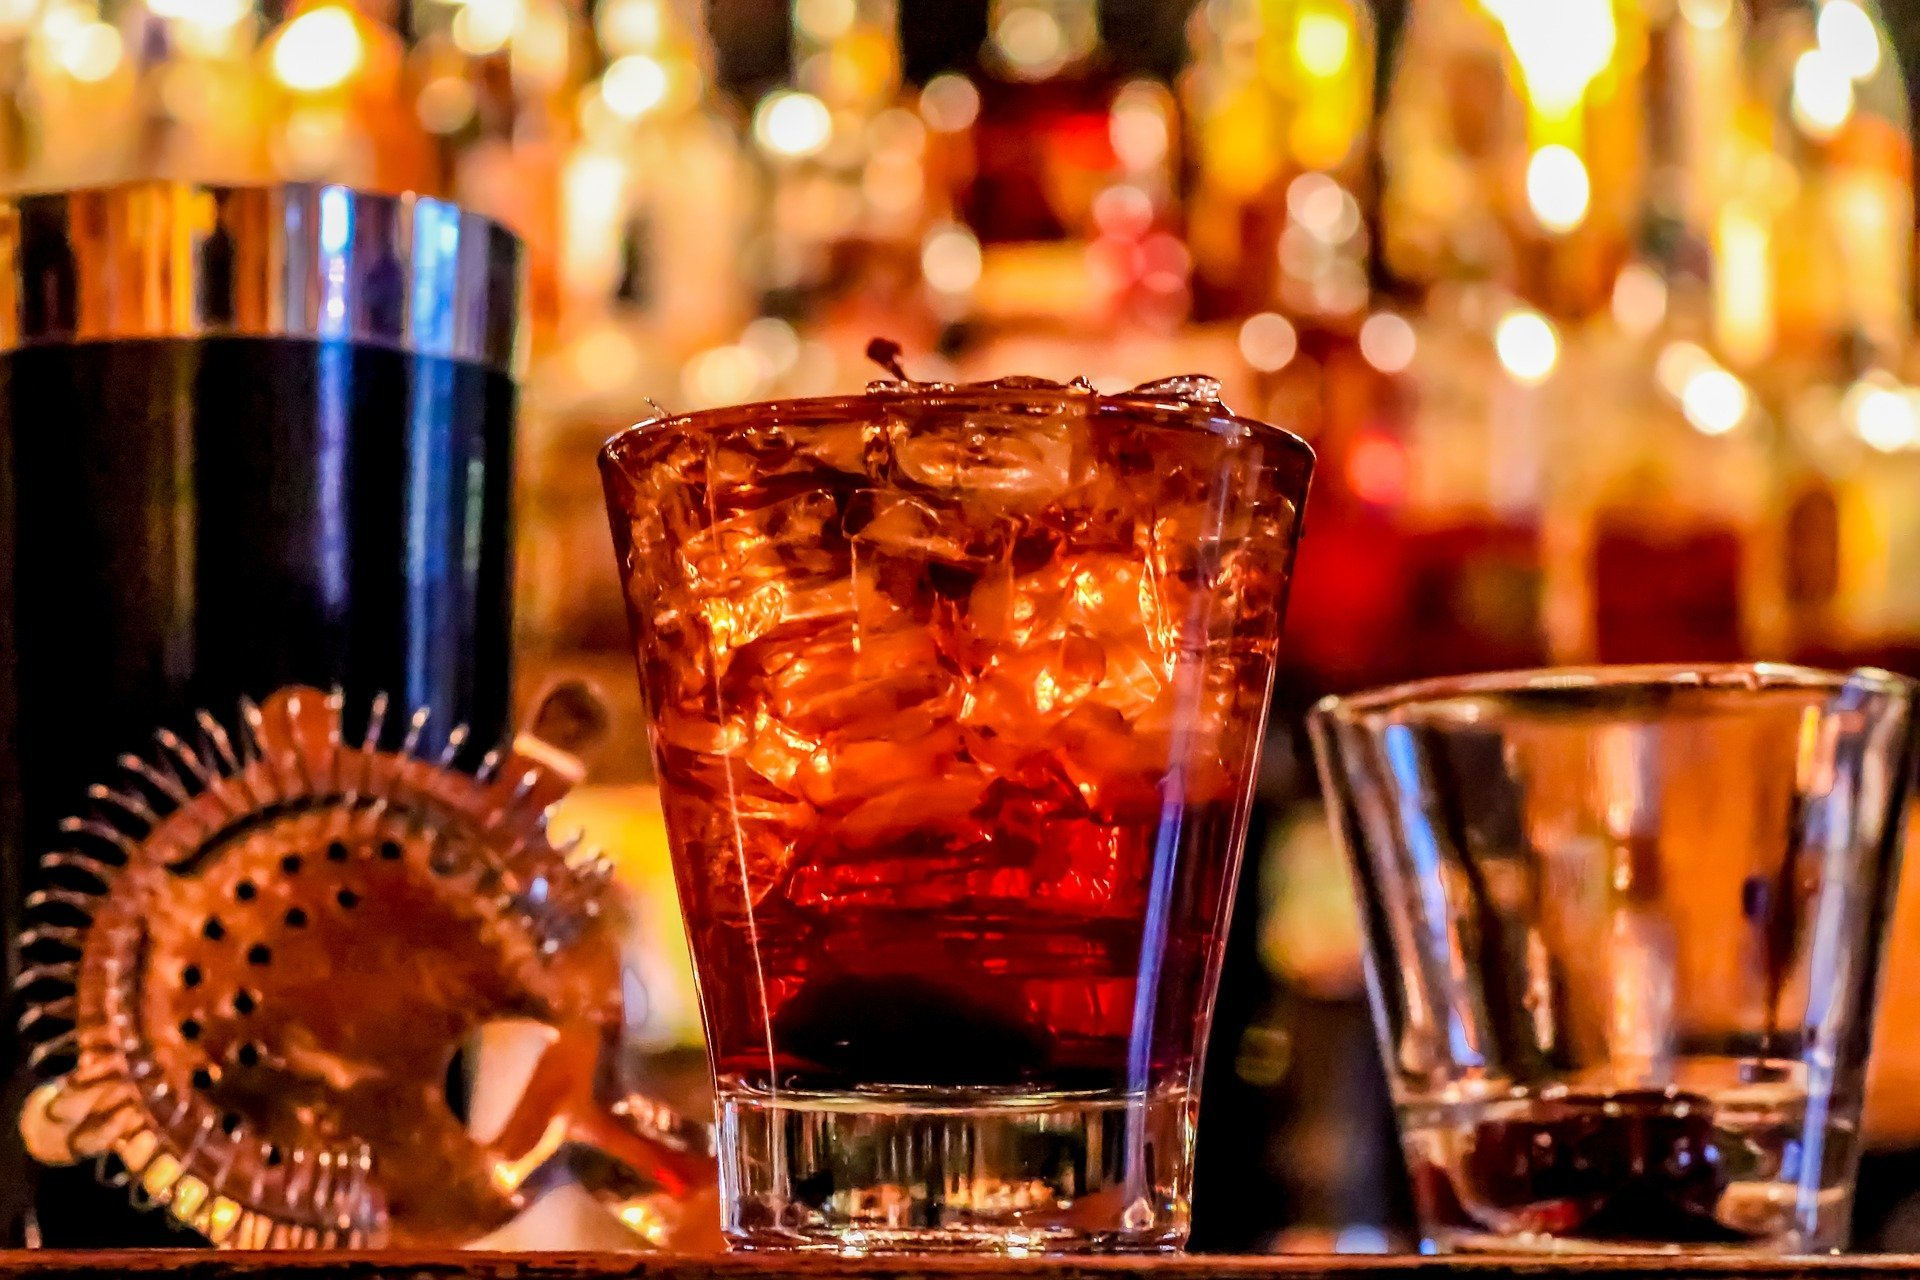 Drinks at a bar.   Source: Social Butterfly/Pixabay